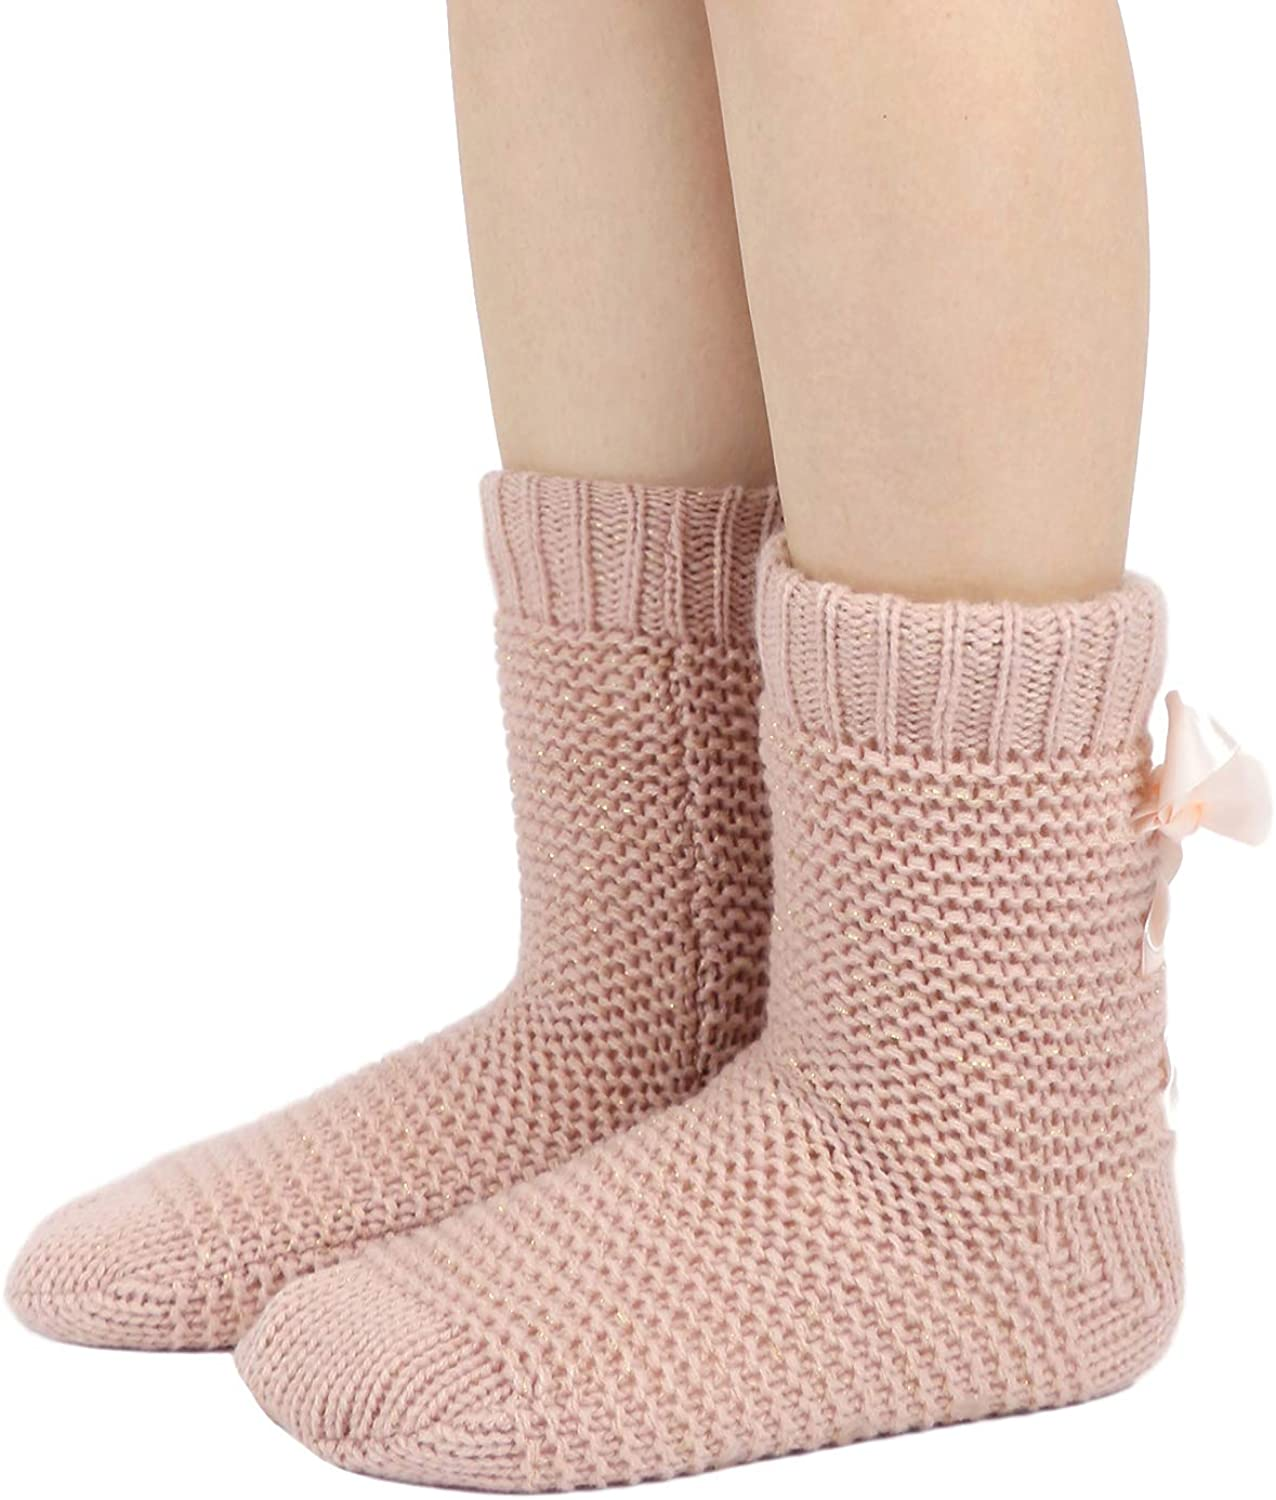 DICUIRD Womens Non-Skid Slipper Socks Long Sleeve Dual Layer Comfy Fuzzy Lined